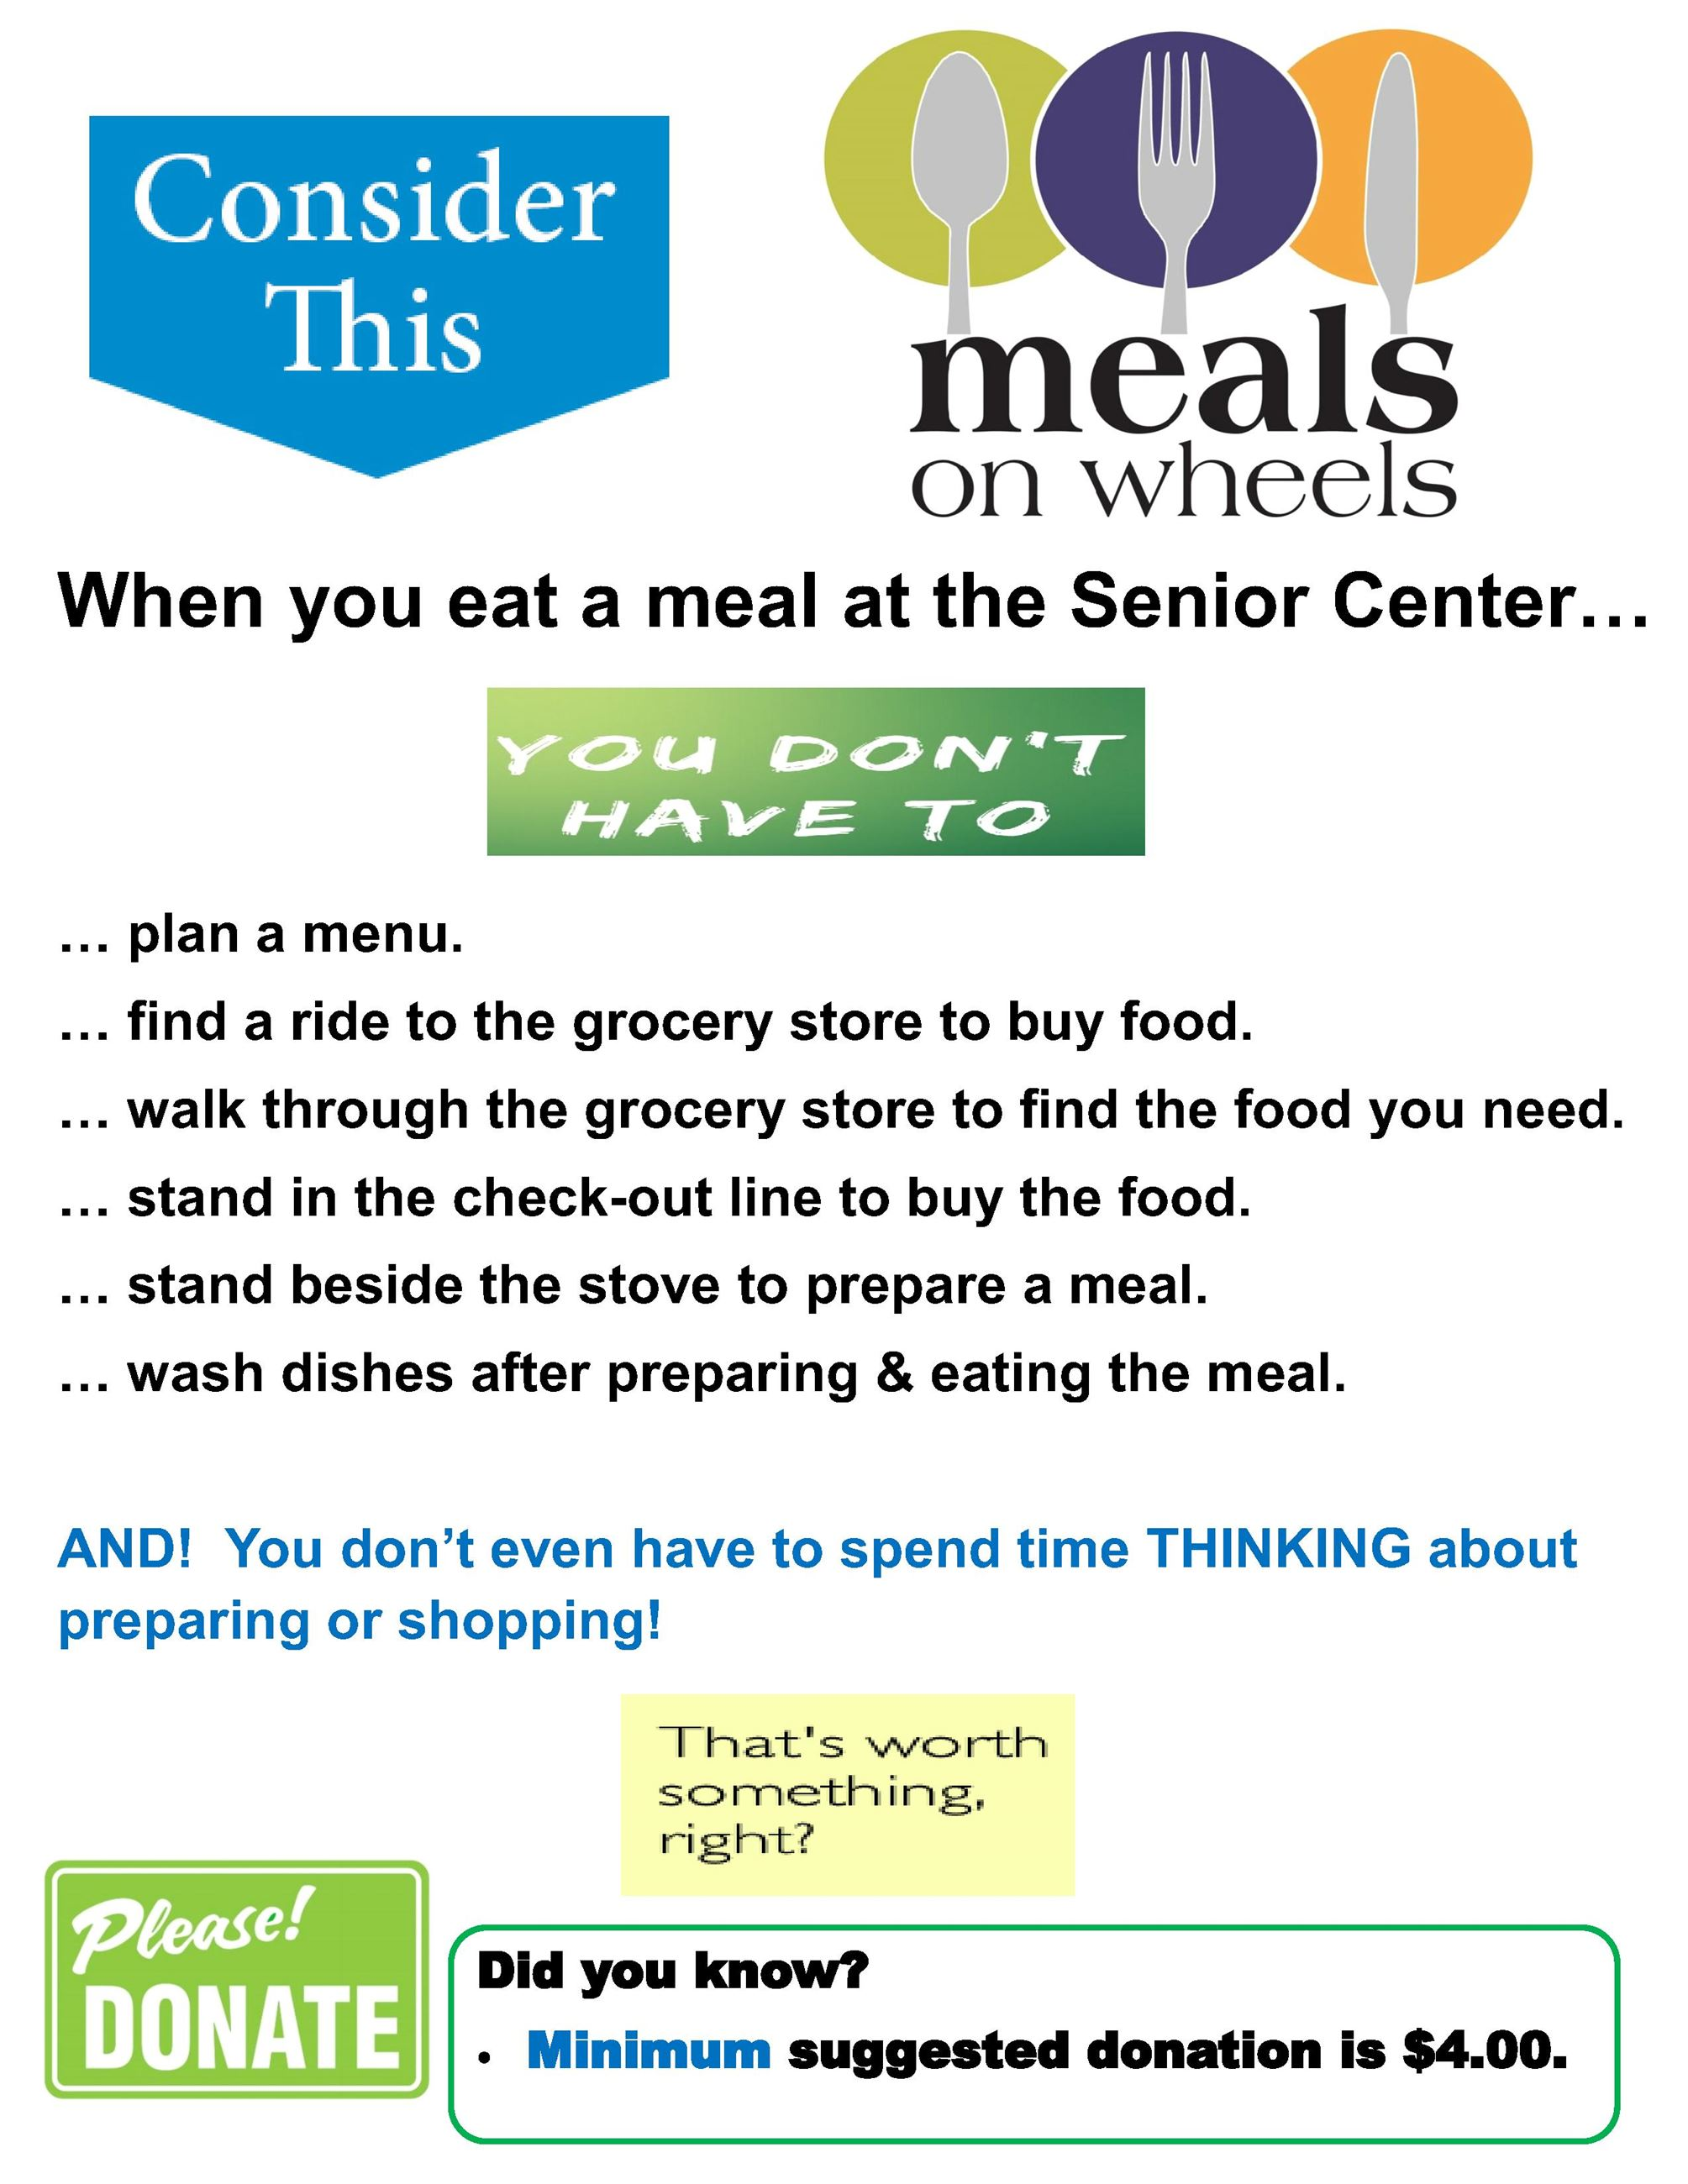 Things you DONT have to do if you eat at the Senior Center